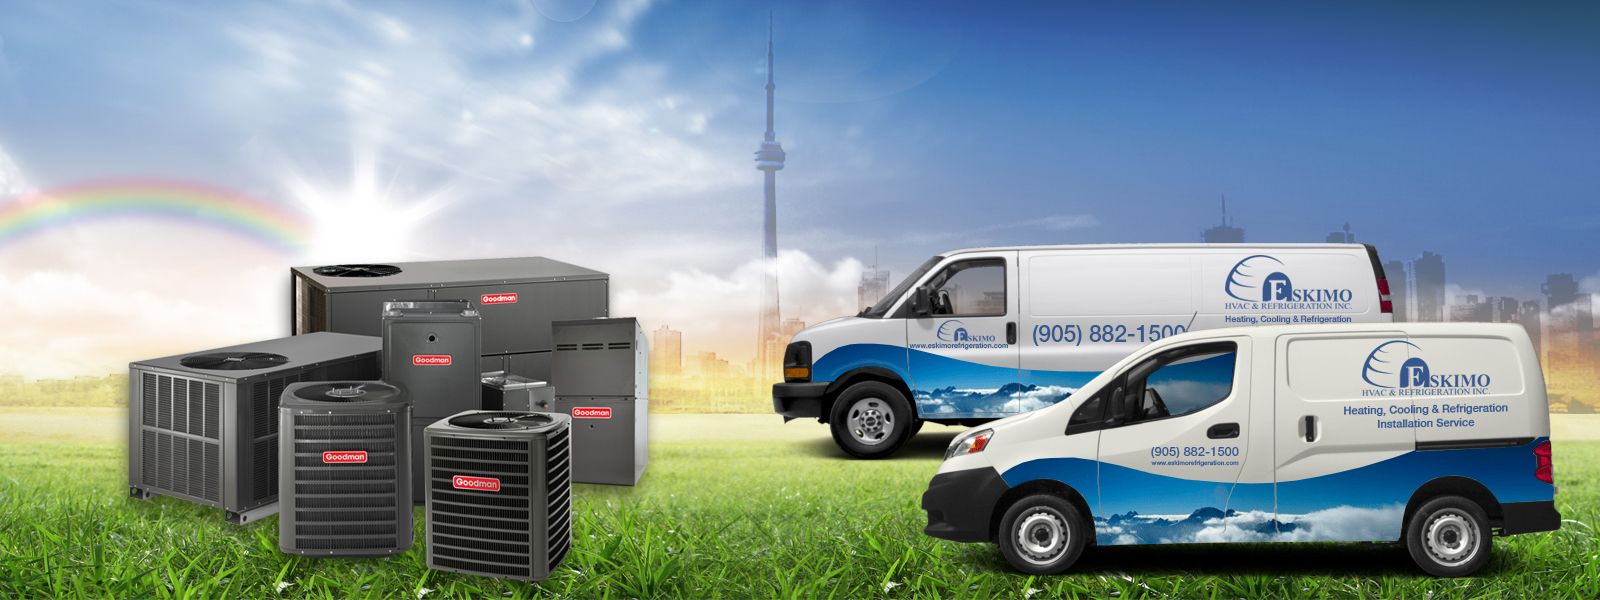 /Commercial HVAC Contractors